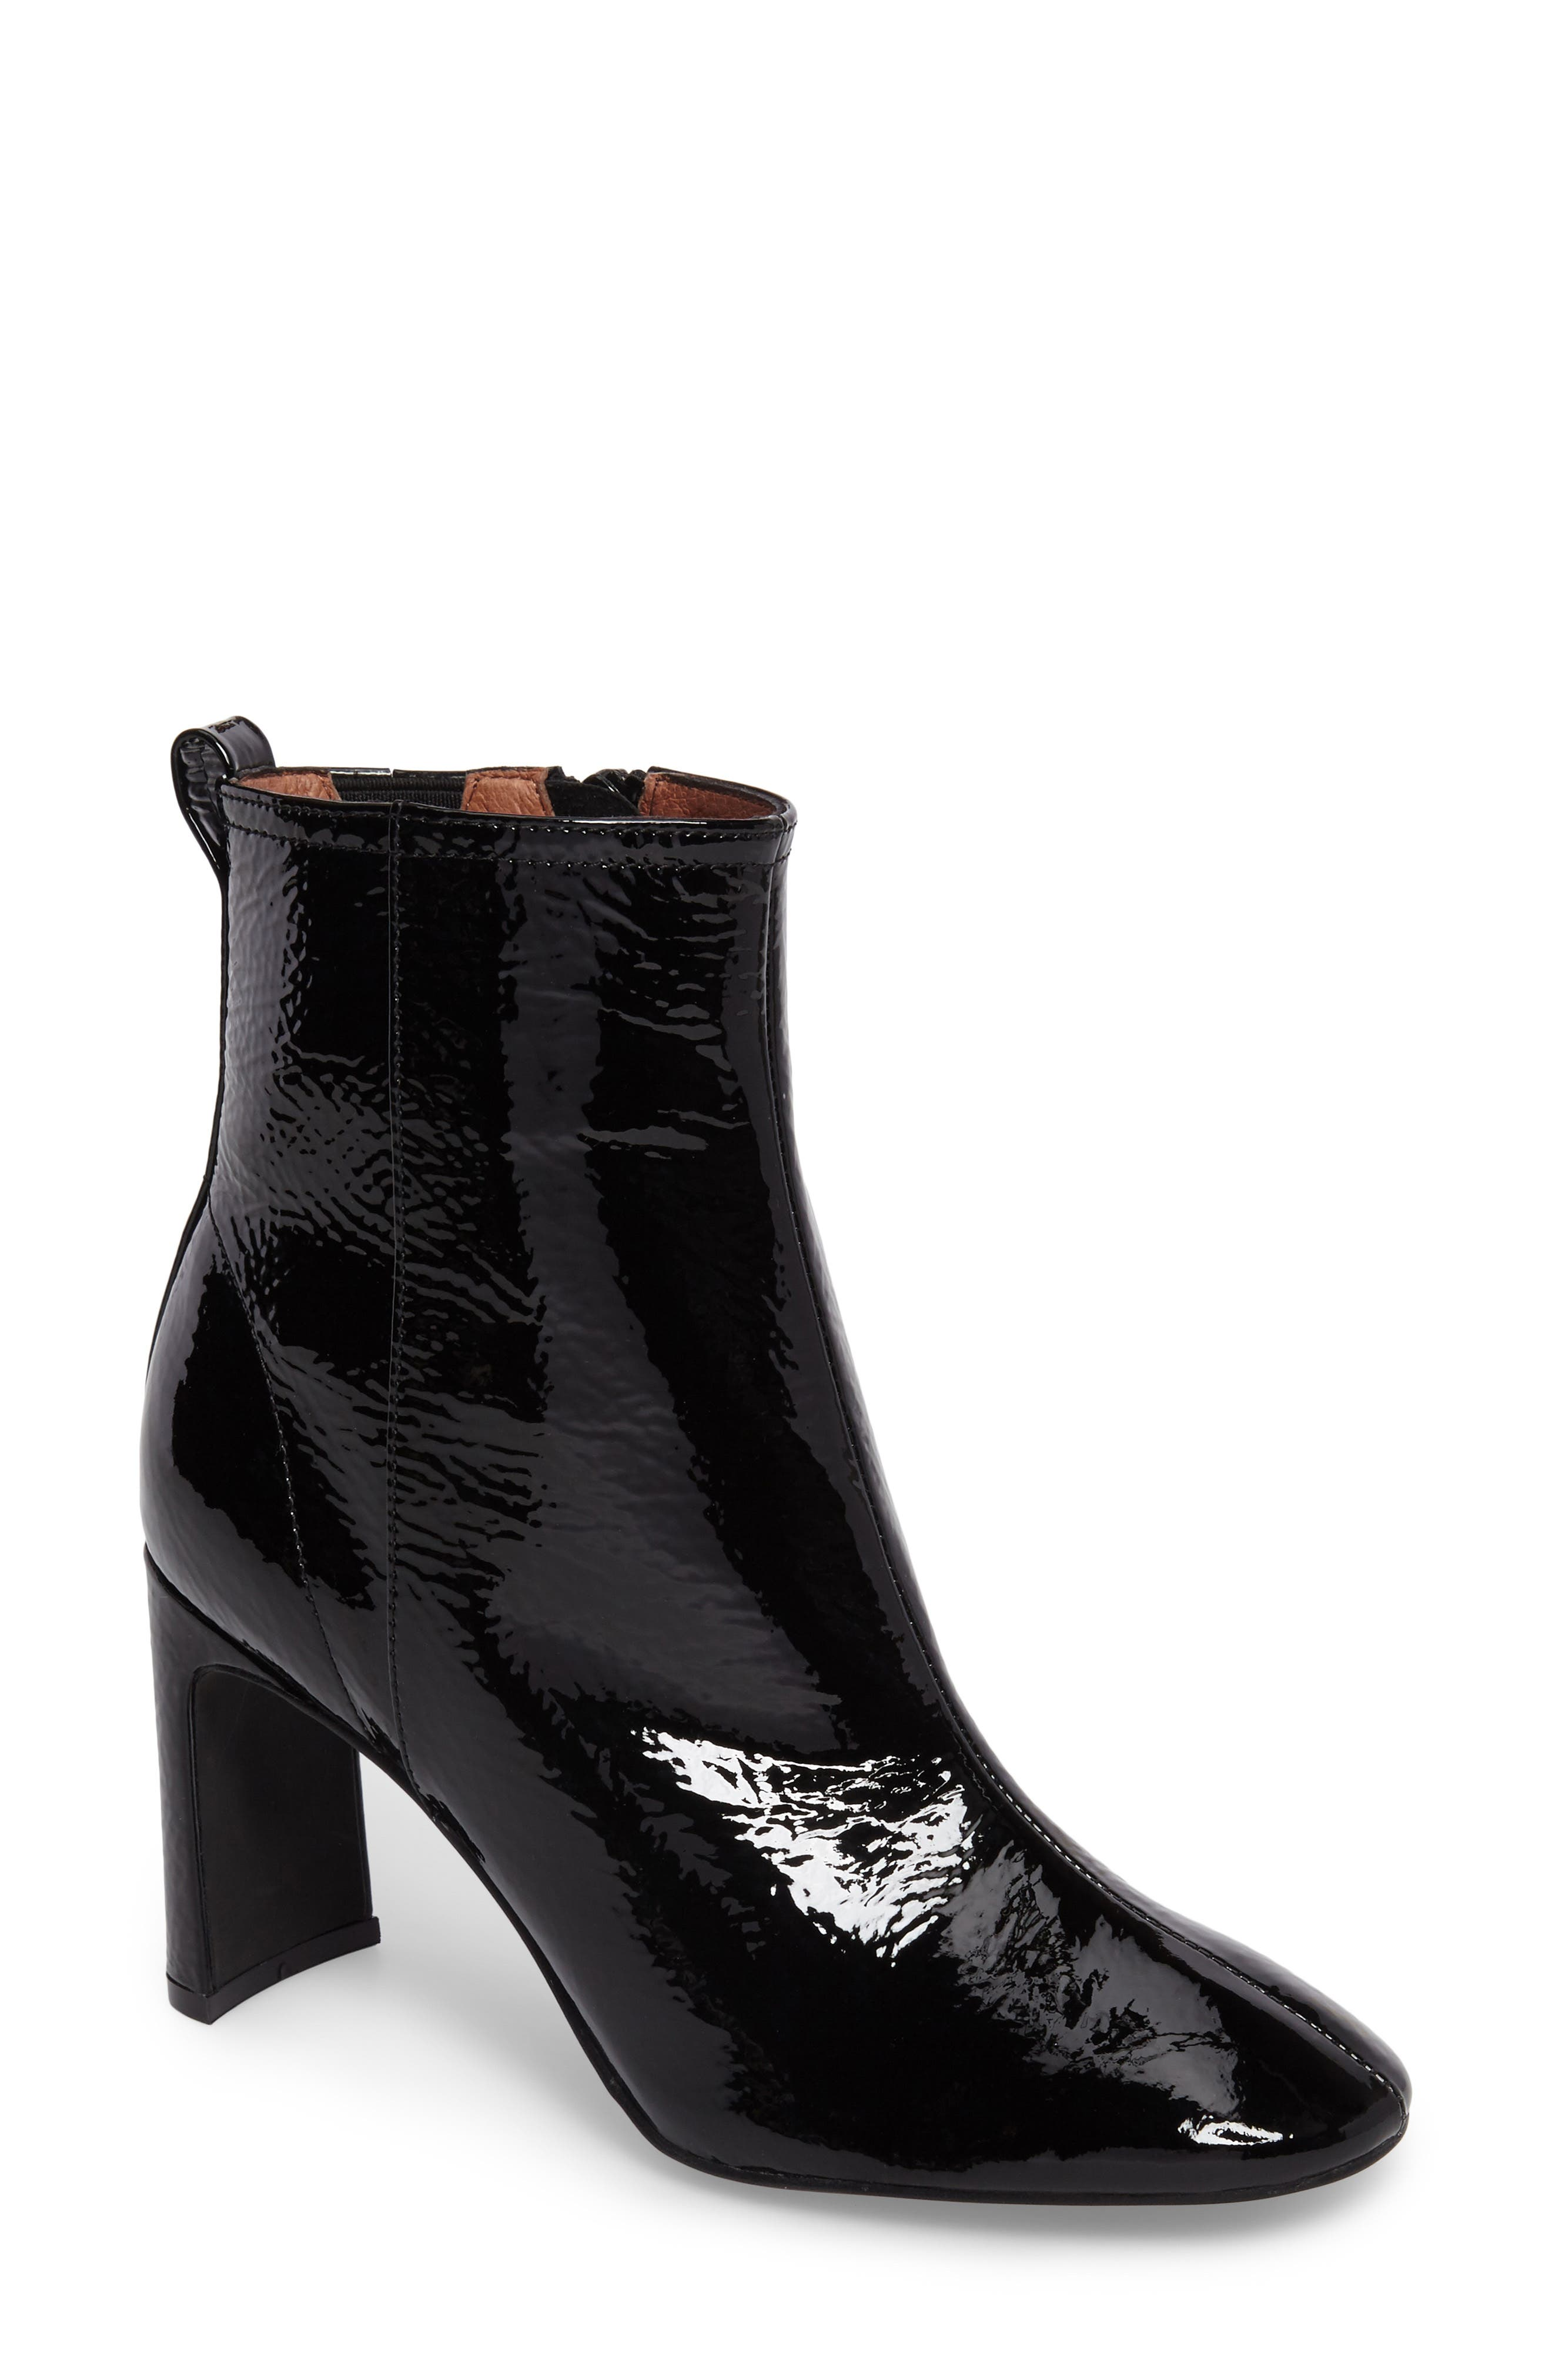 Chapel Curved Heel Bootie,                         Main,                         color, Black Crinkle Patent